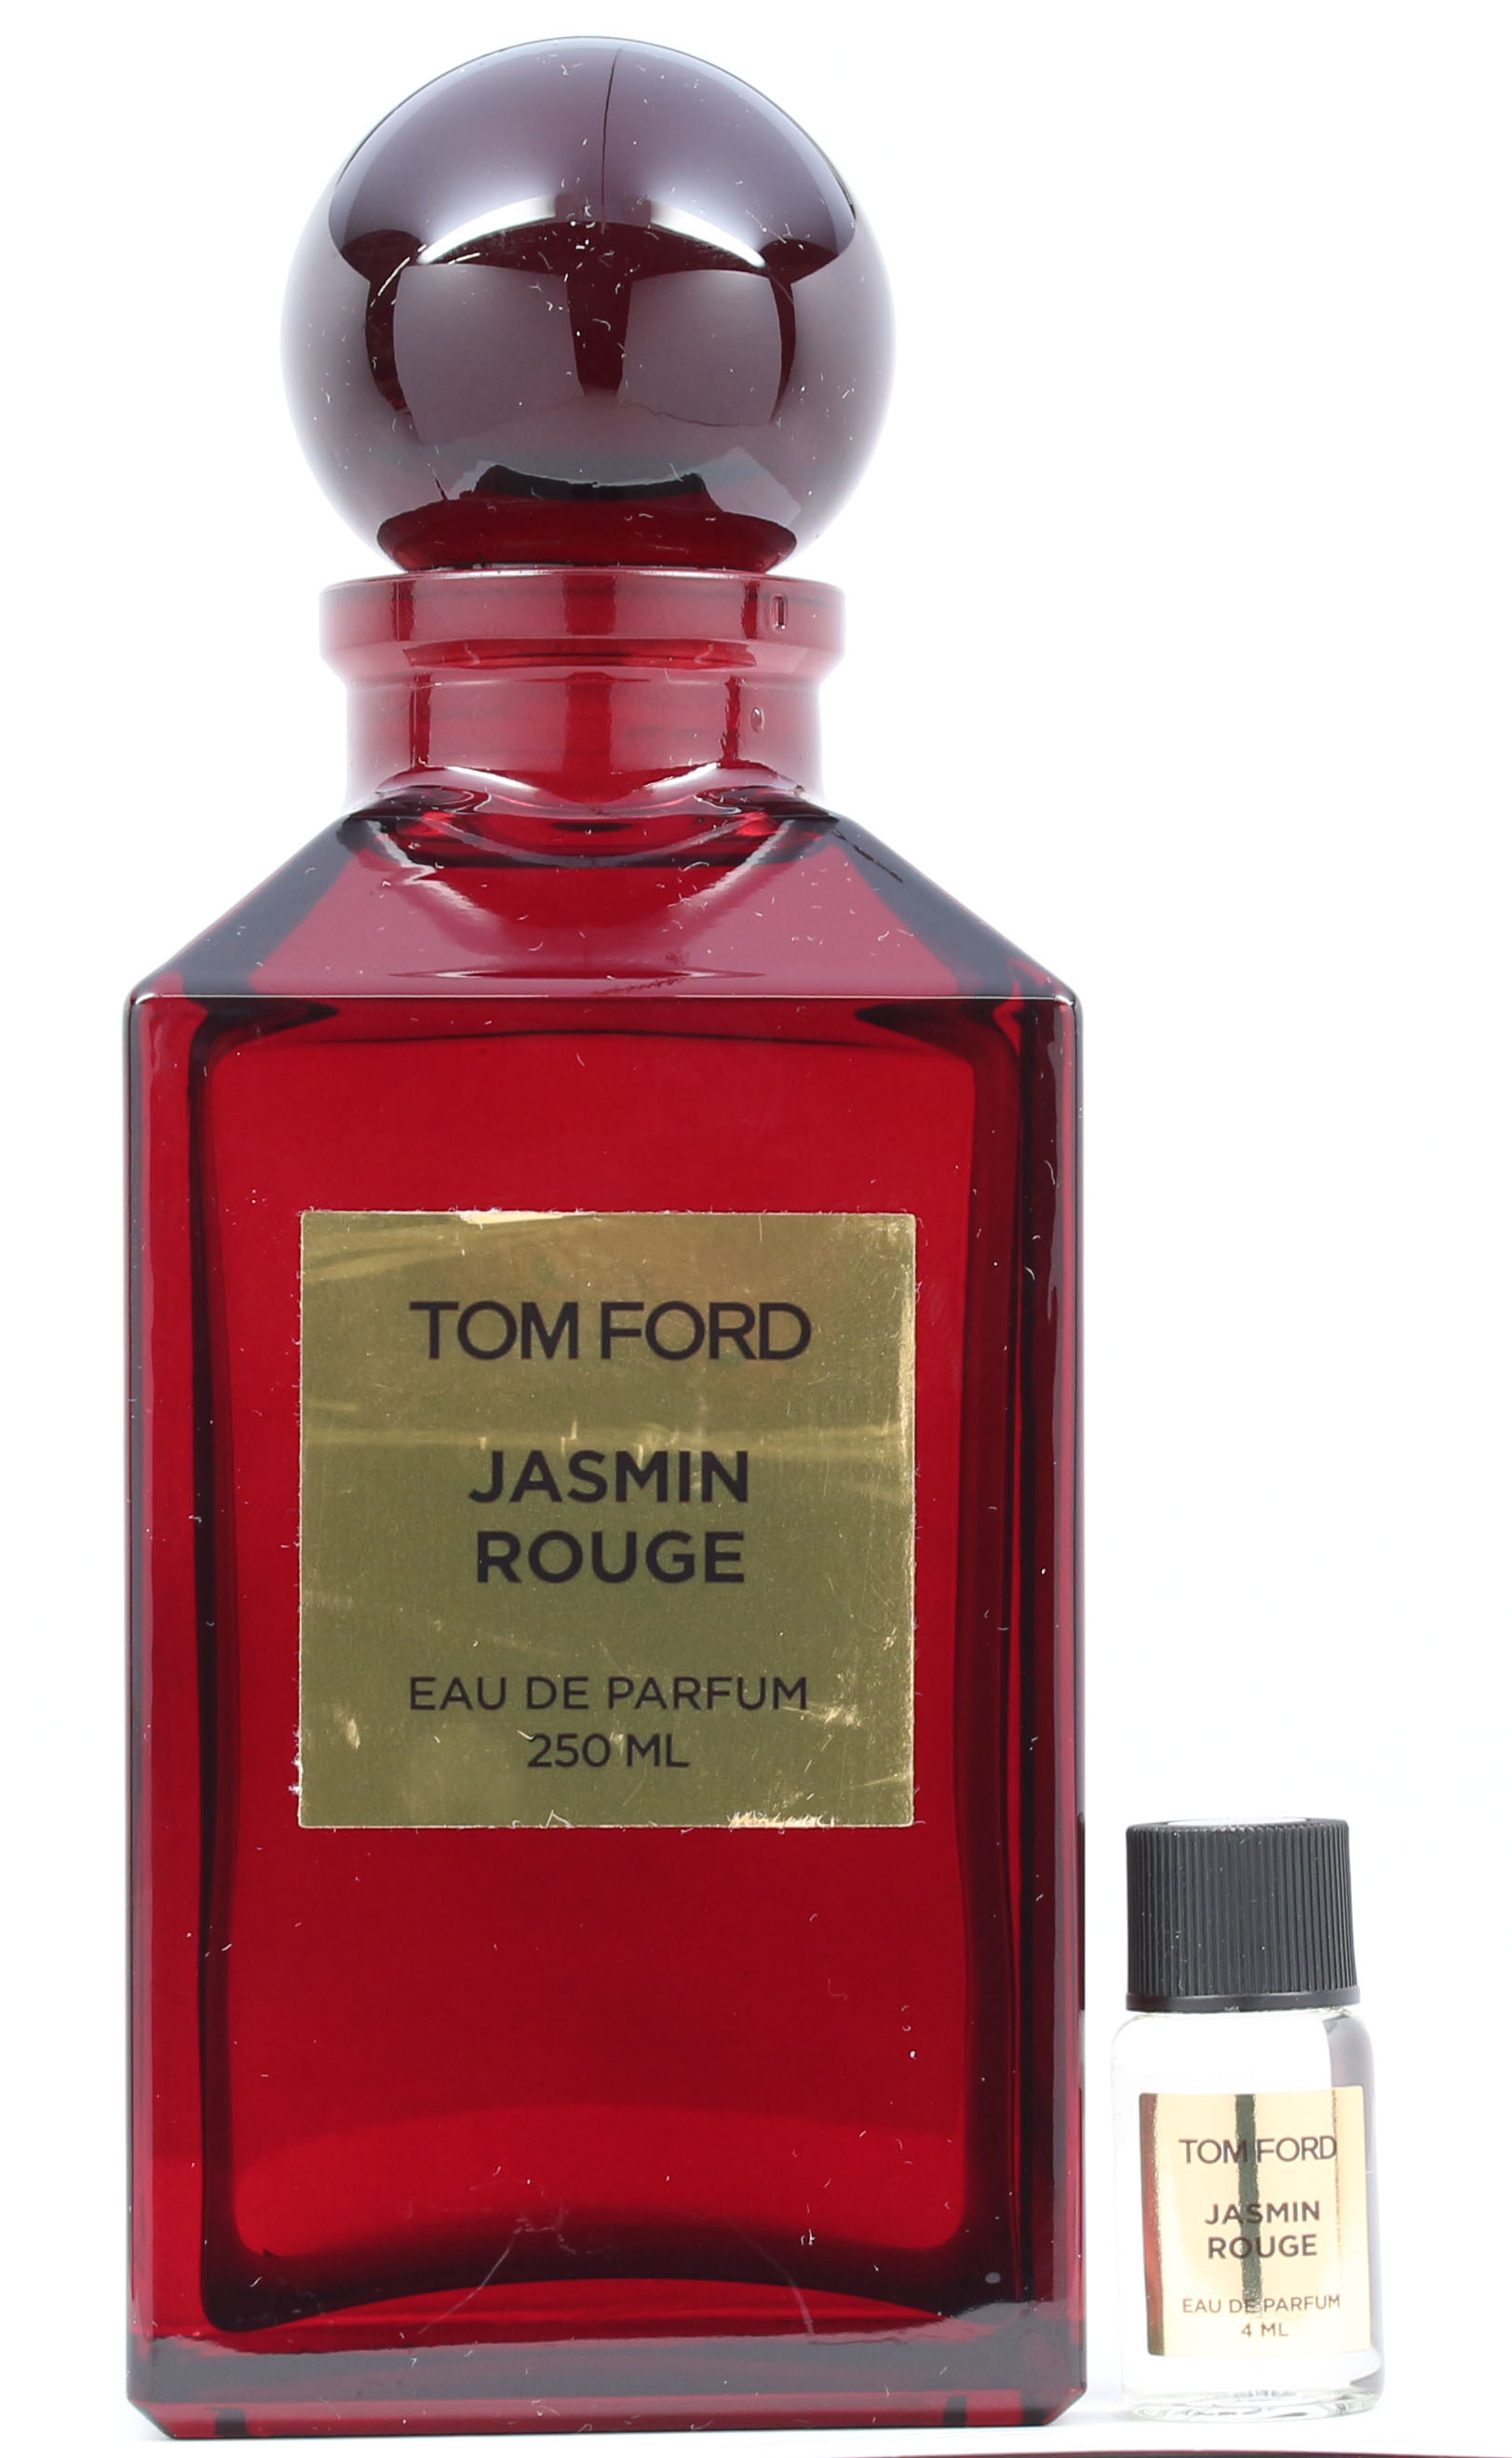 tom ford jasmin rouge edp decanter mini 4ml gift set. Black Bedroom Furniture Sets. Home Design Ideas